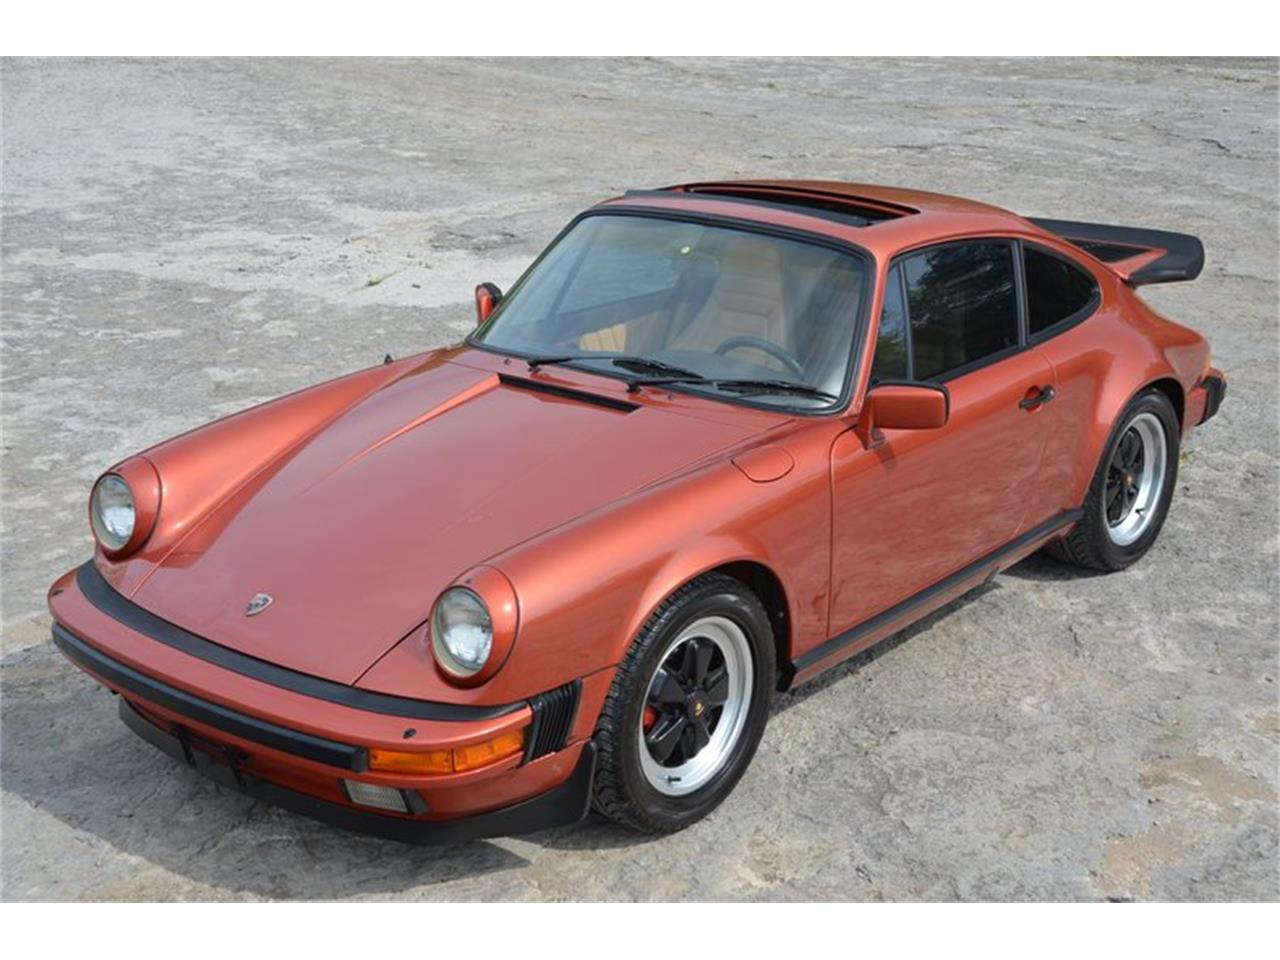 Large Picture of 1984 Porsche 911 - $42,500.00 Offered by Frazier Motor Car Company - PX8U